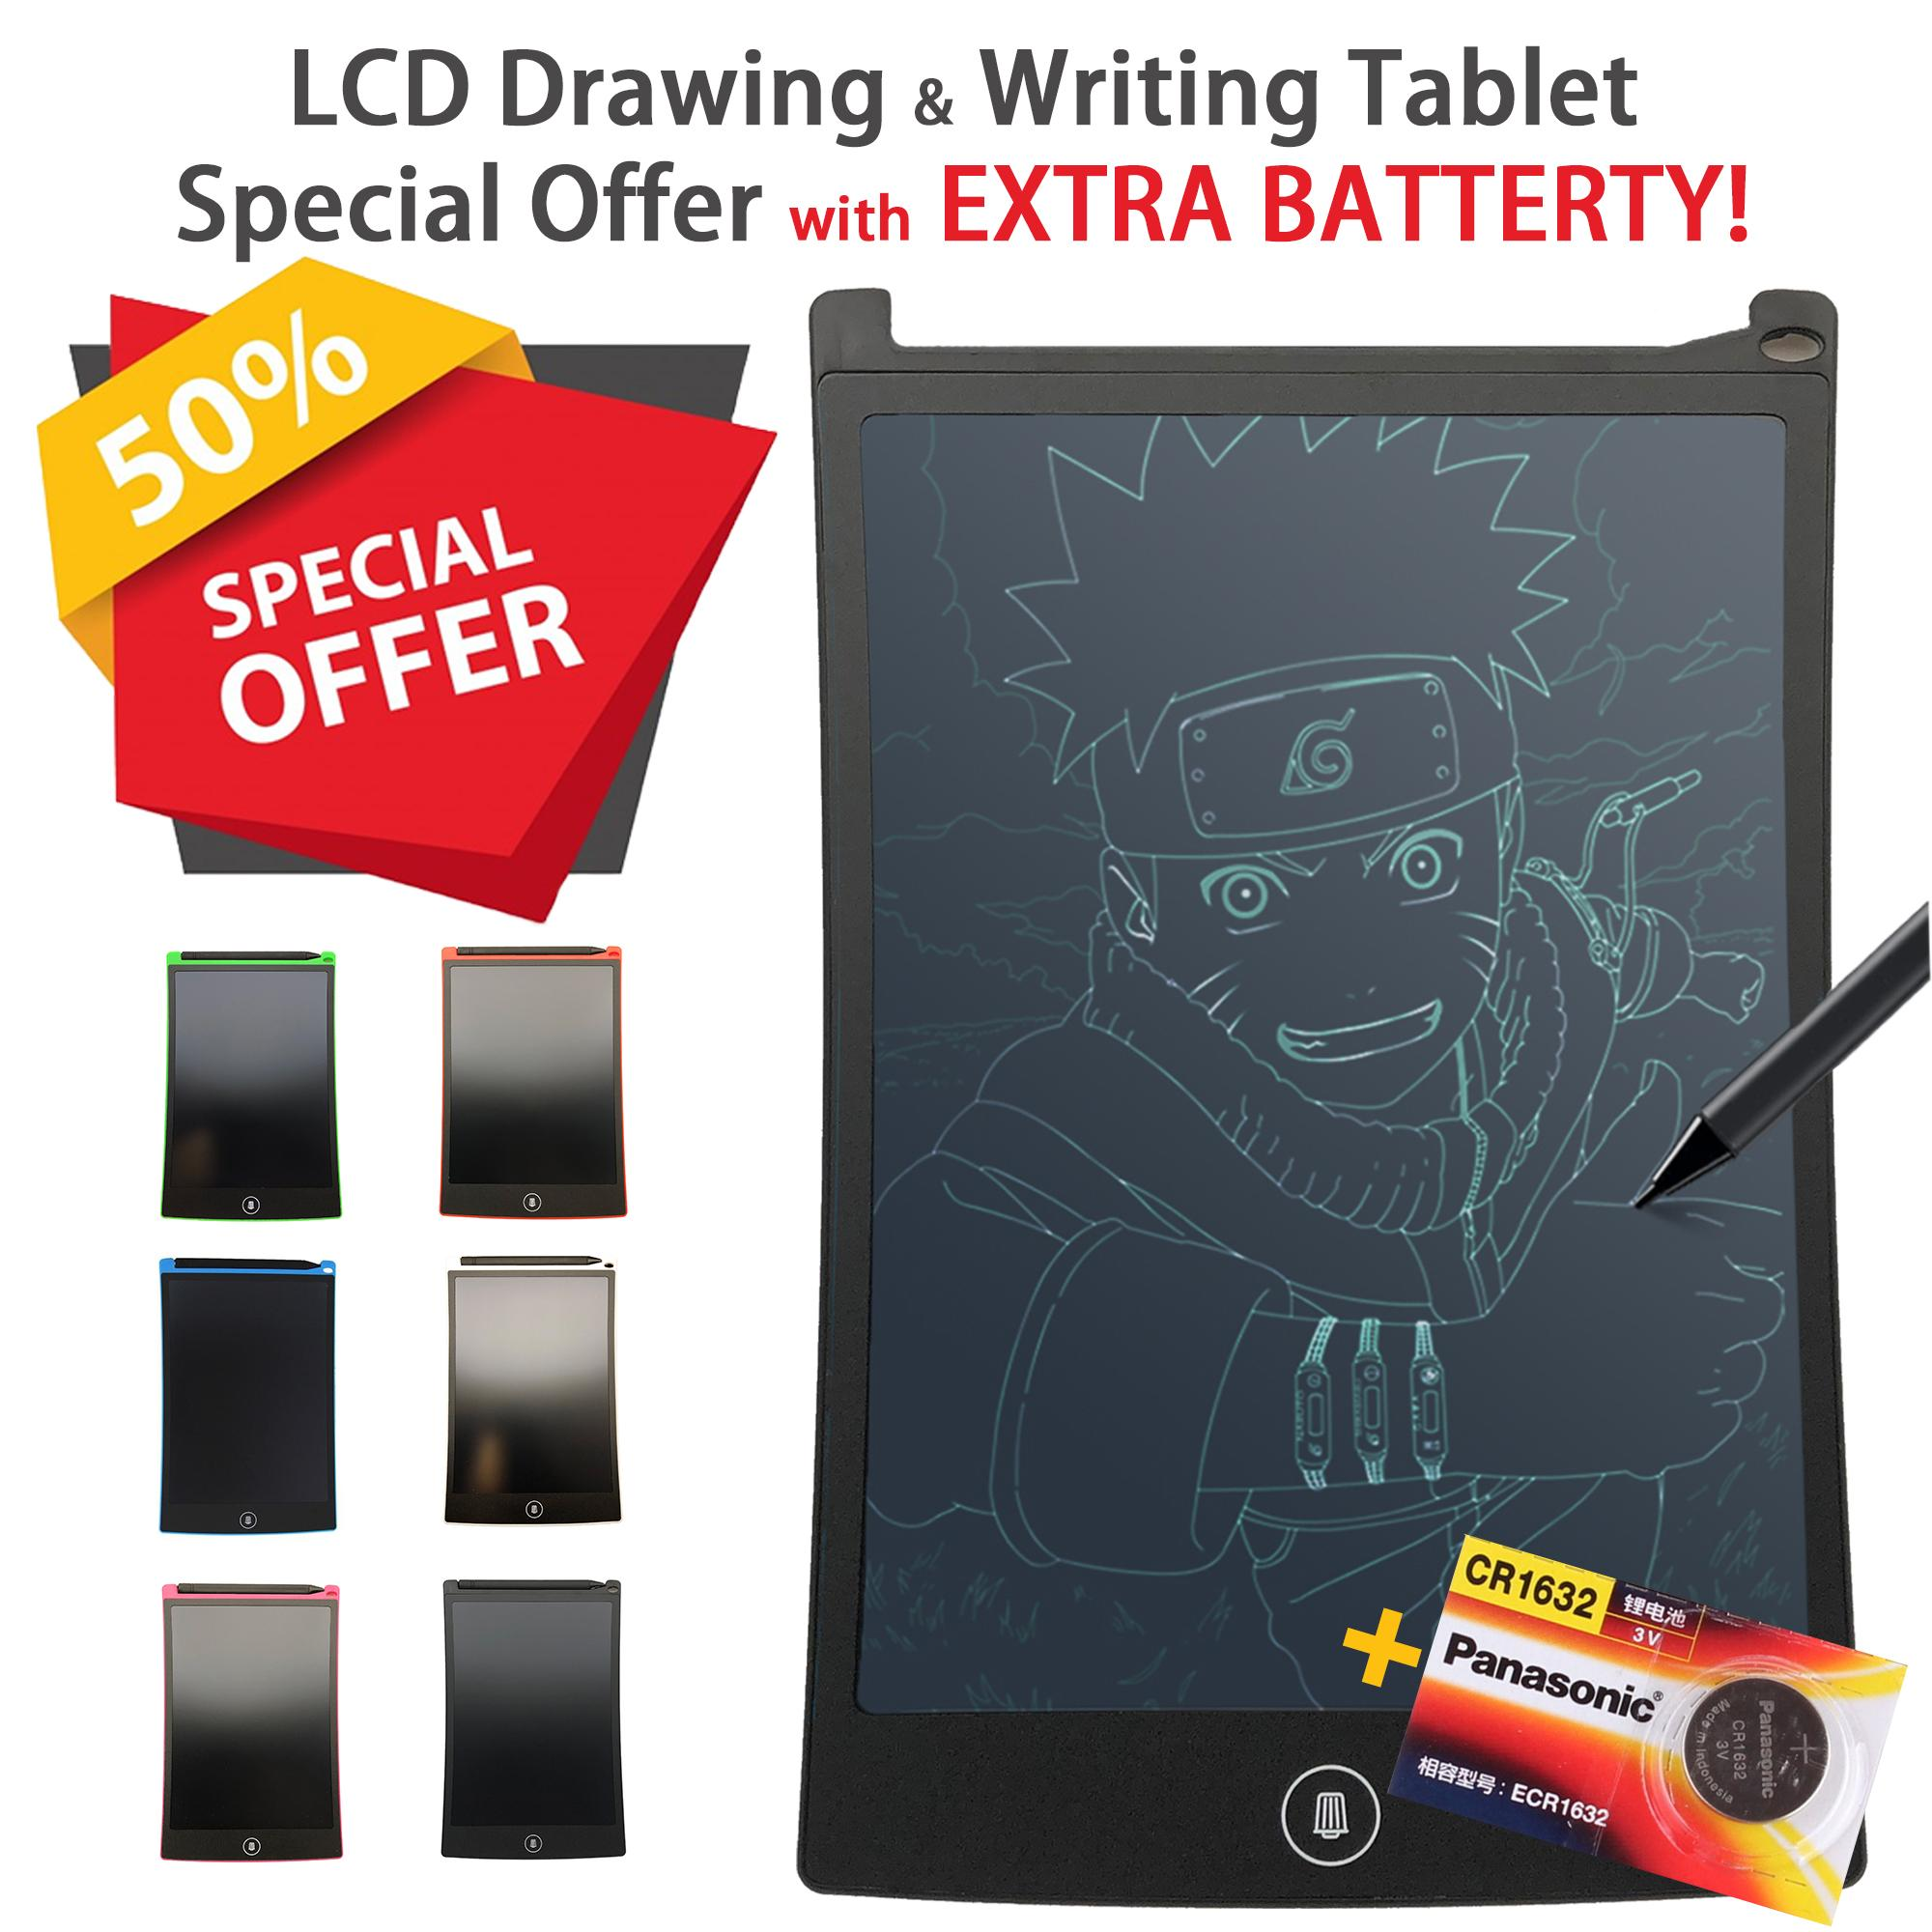 8.5 Inch Lcd Ultra Bright Drawing & Writing Memo Pad Tablet Boogie Board Digital Writing & Digital Drawing Graphics Board For Home Office & For Children By Trading Link.